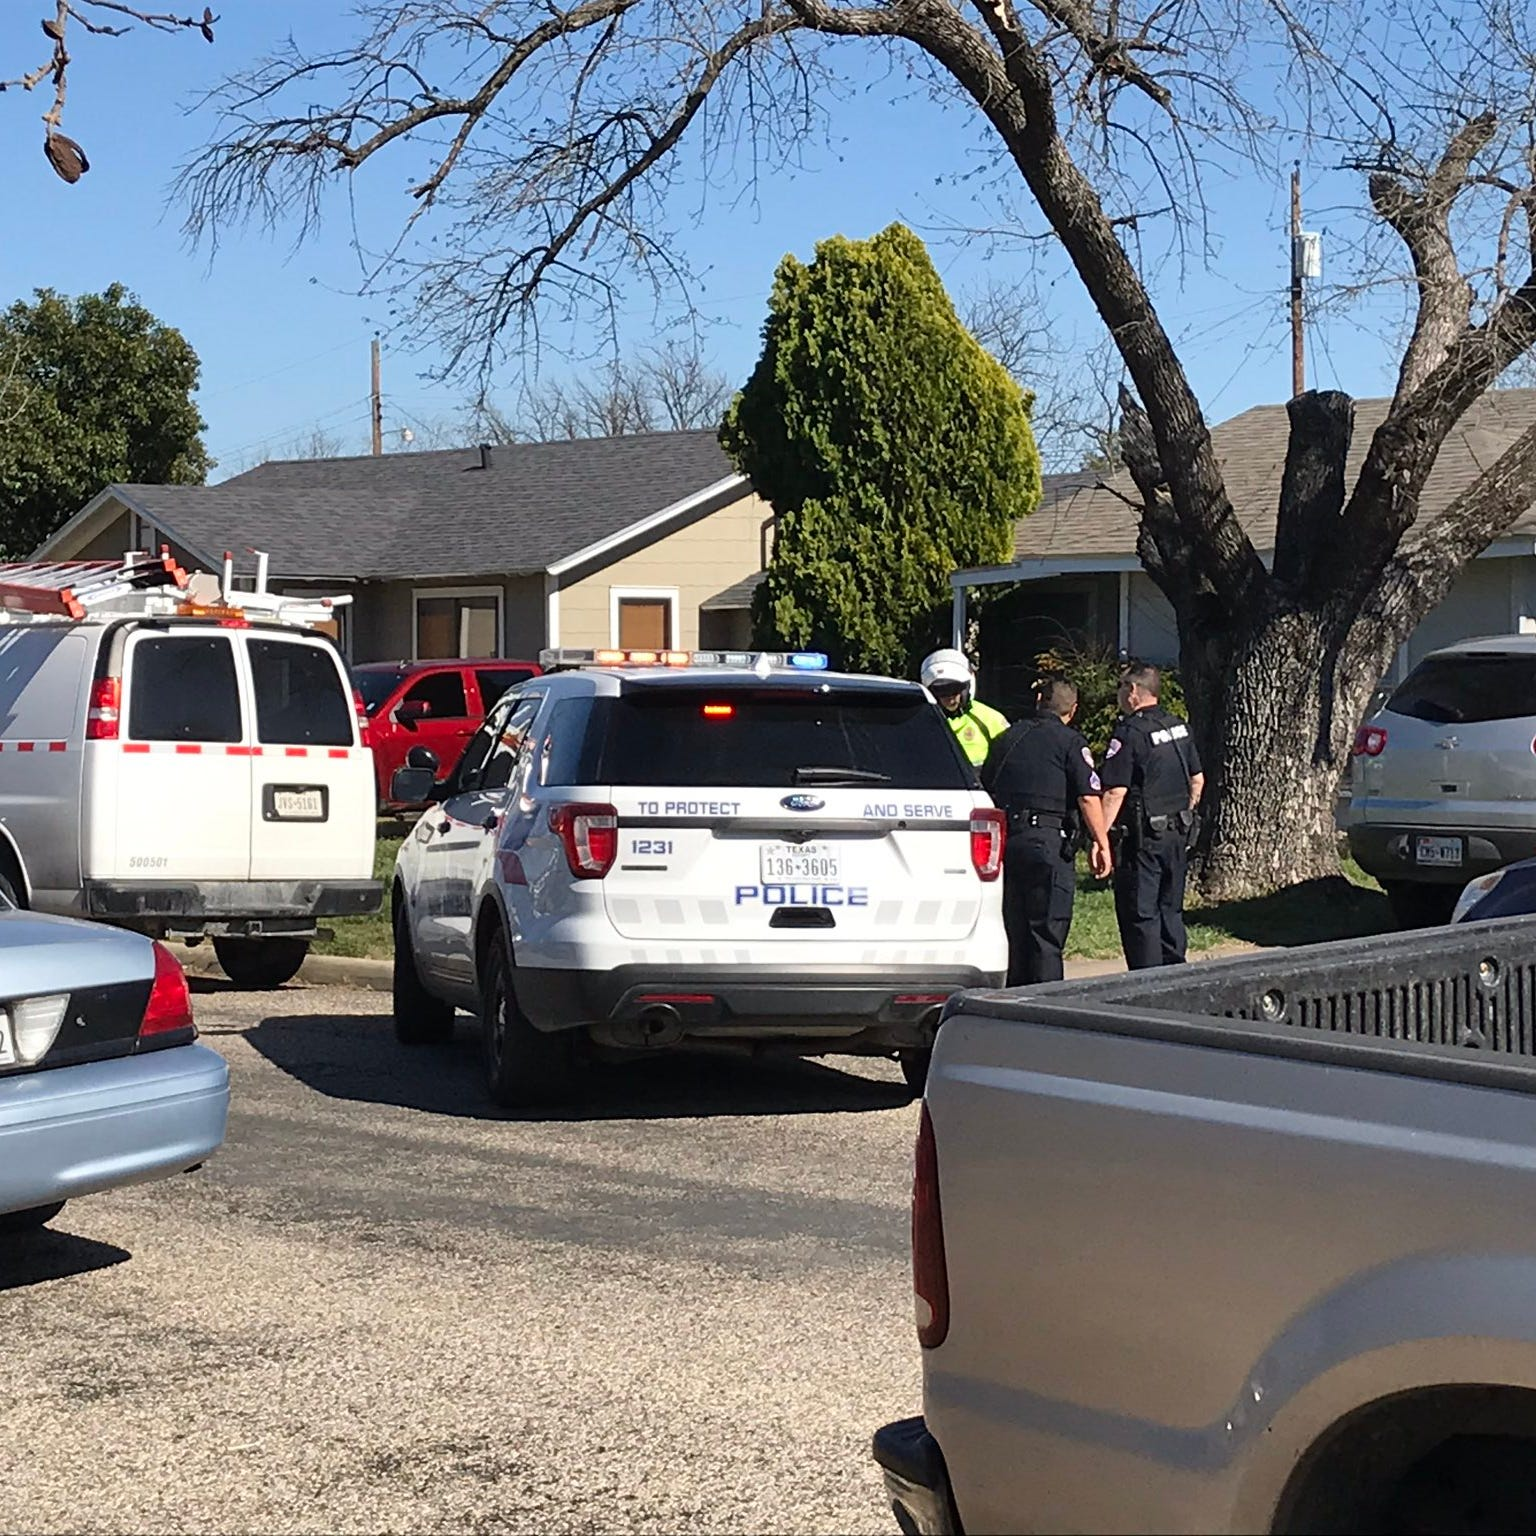 Police swarm into west San Angelo neighborhood over possible shooting incident